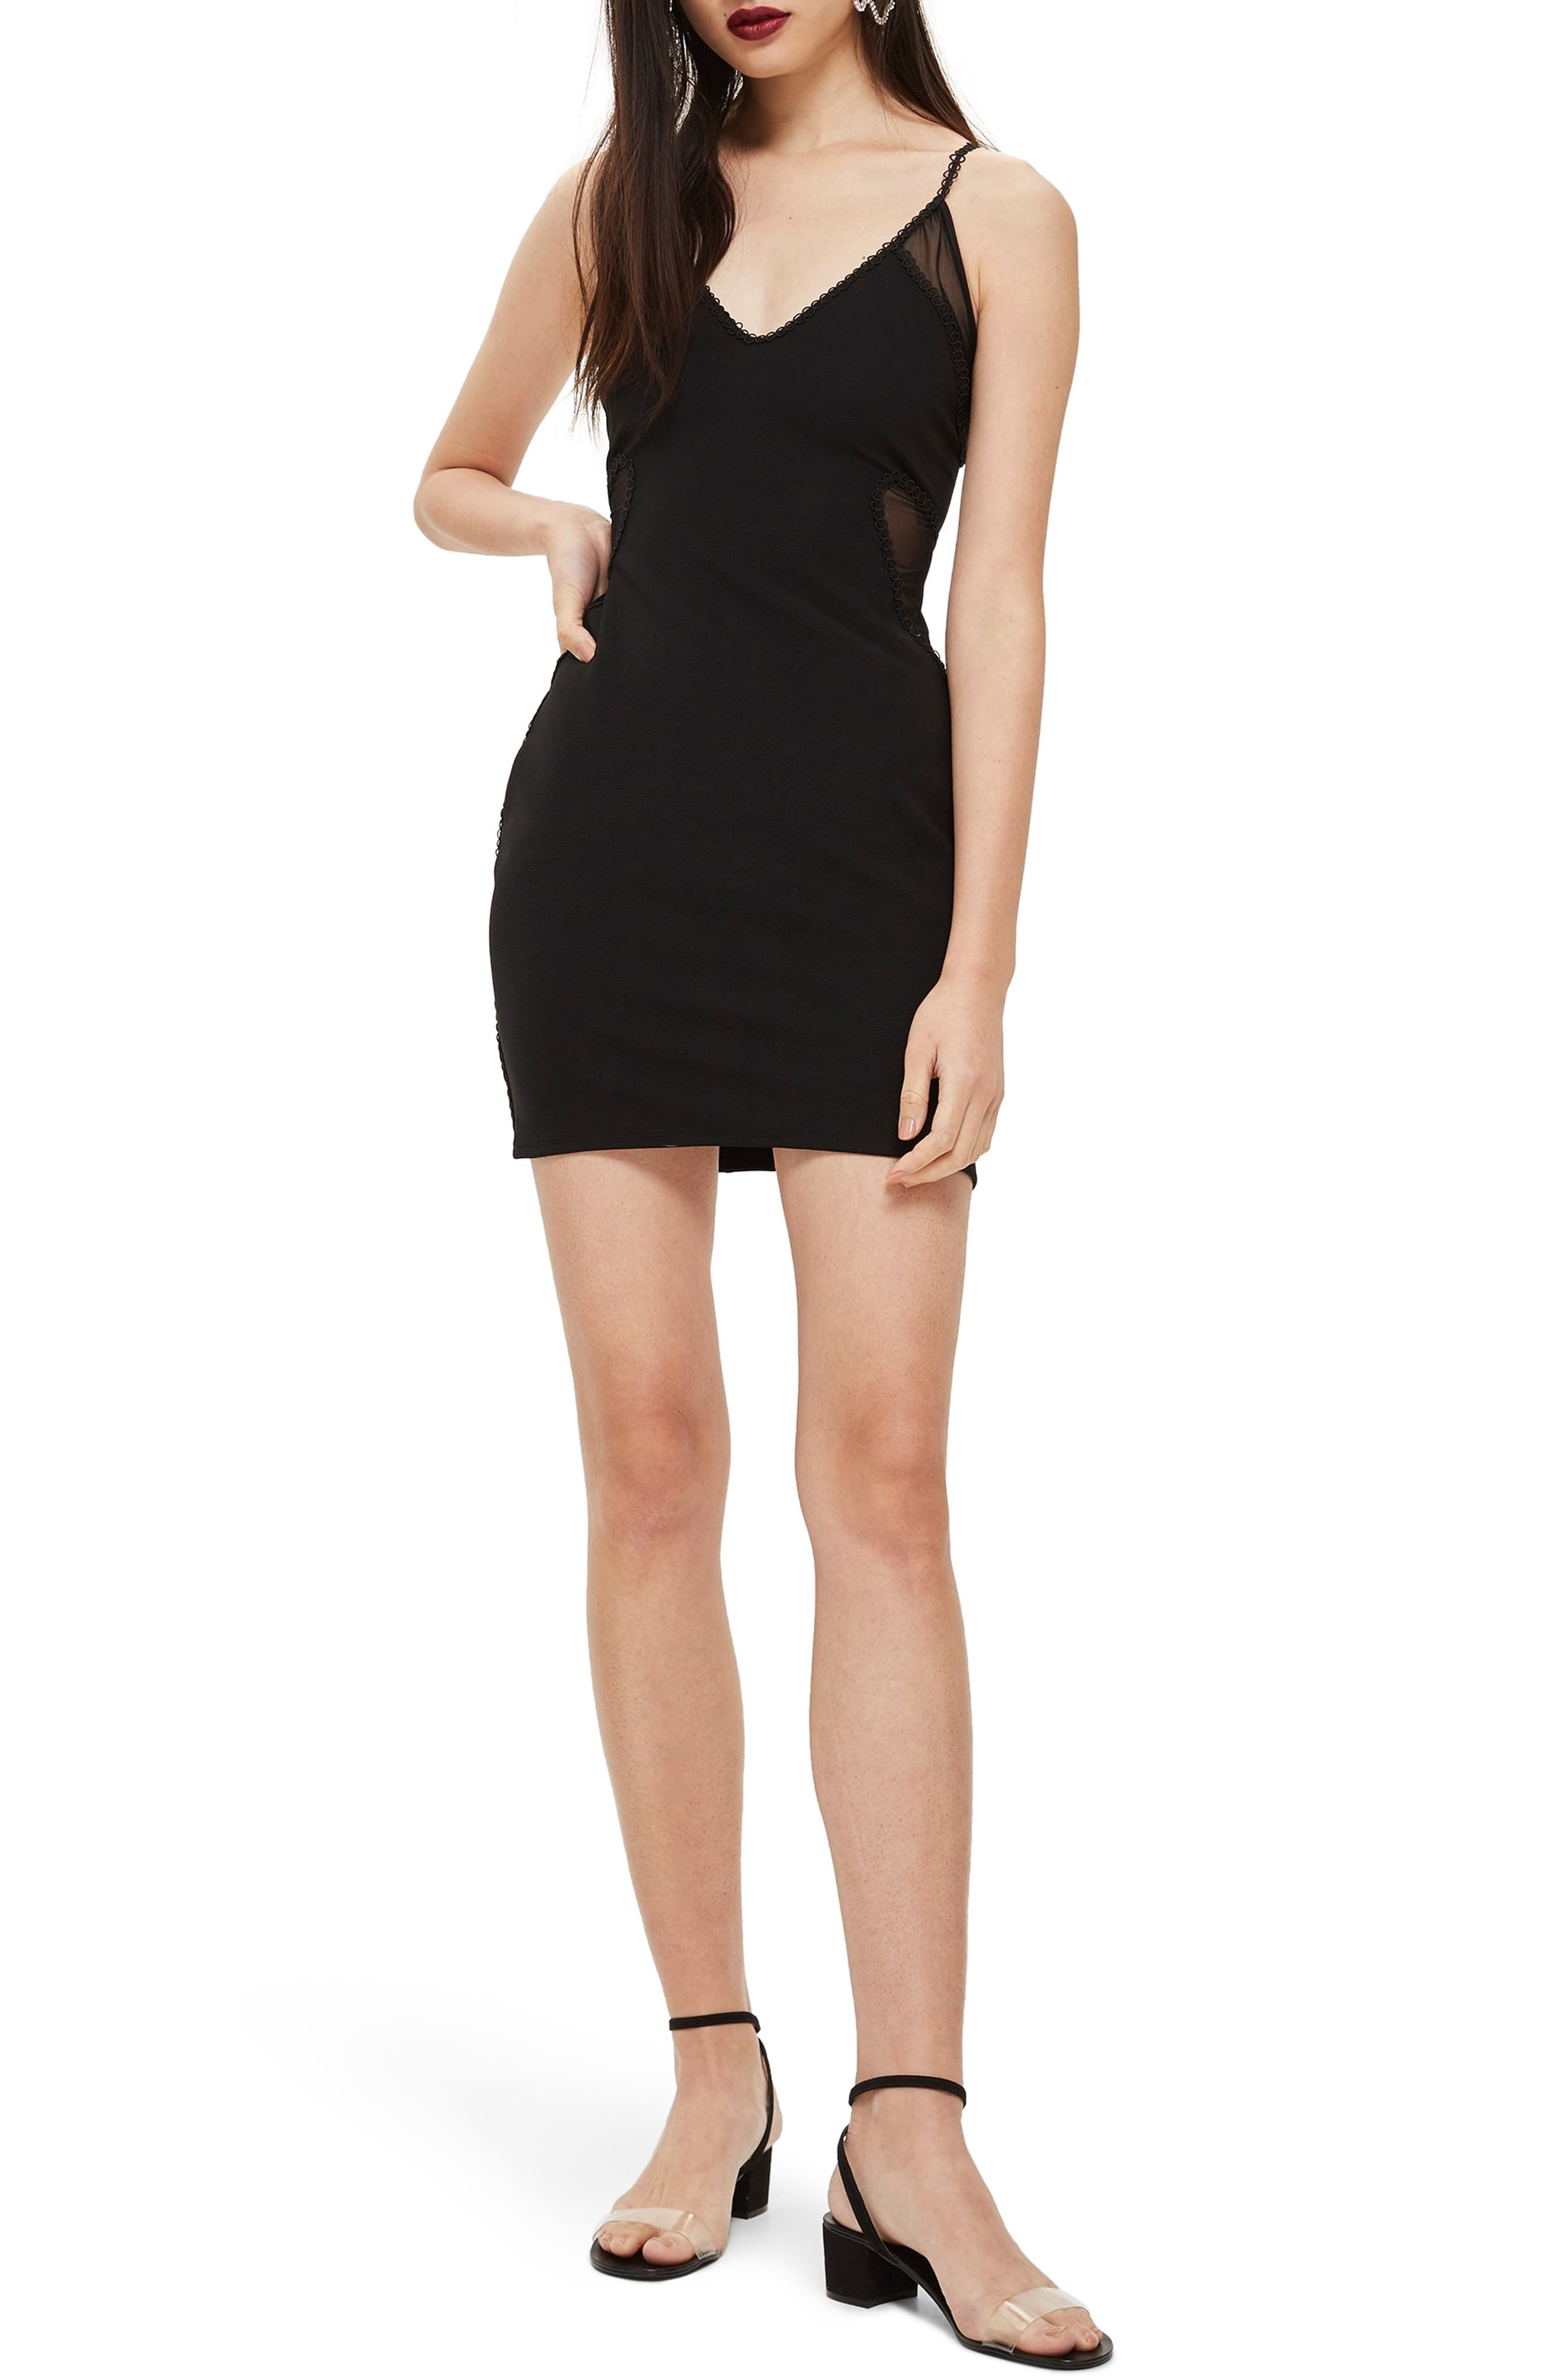 Topshop Mesh Inset Body-Con Dress